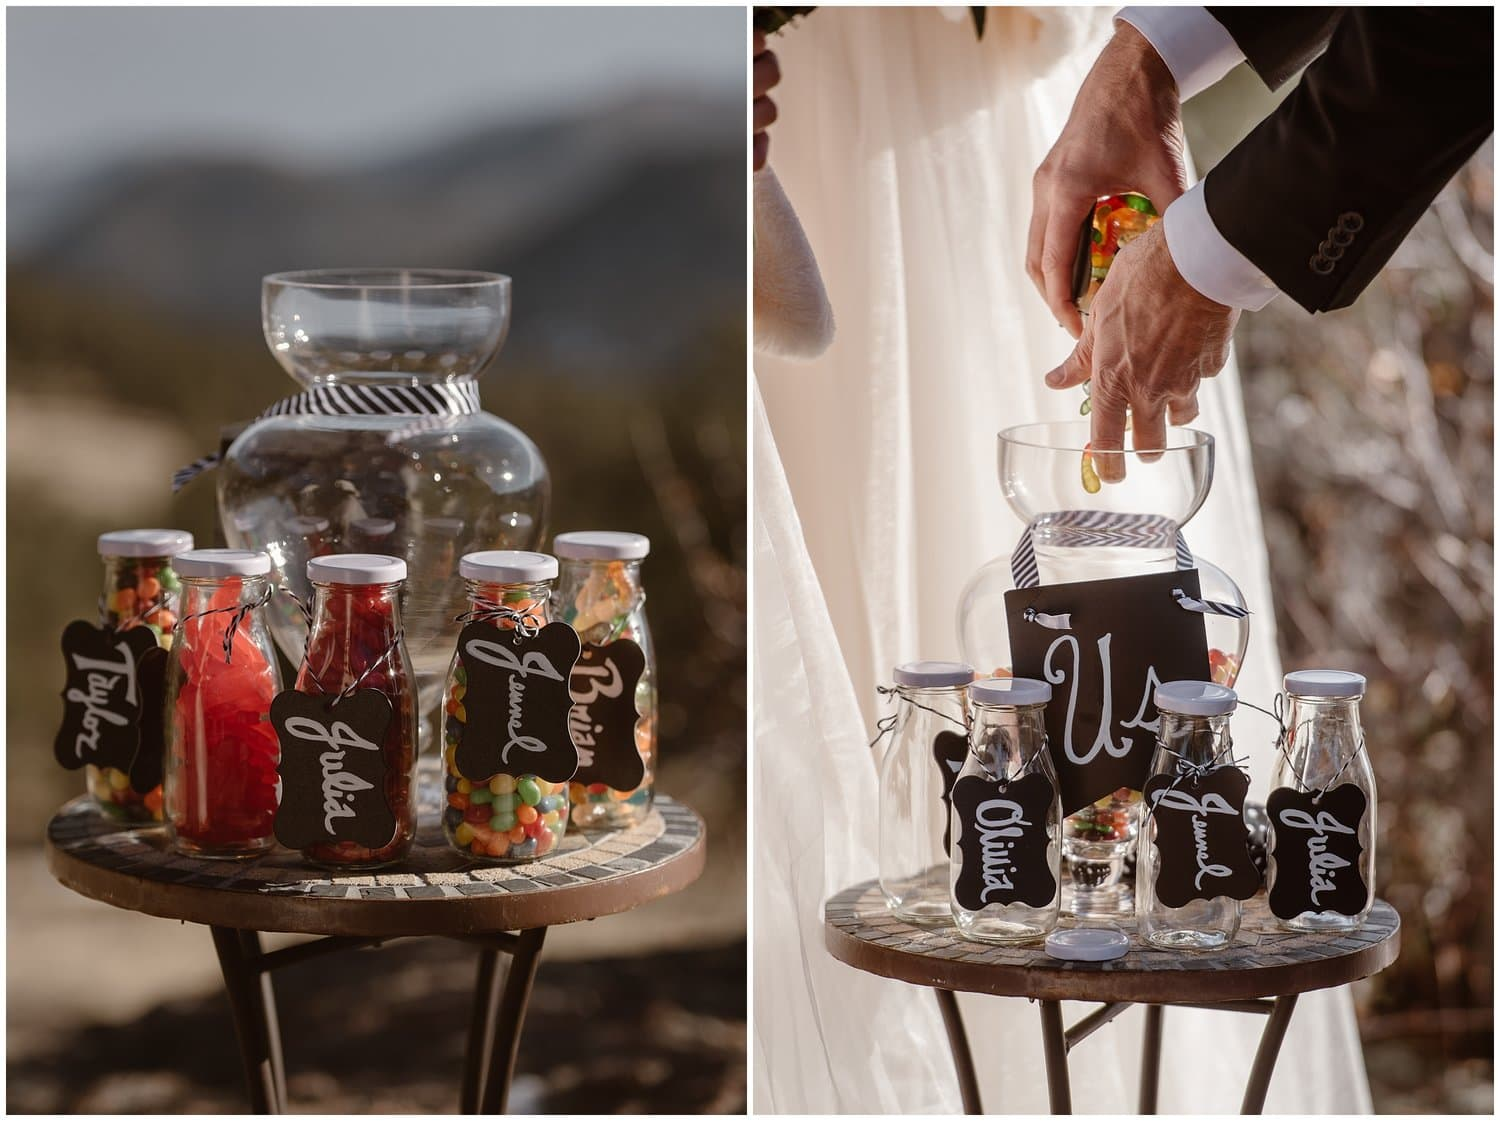 Detailed shot of candy jars on a wedding day.